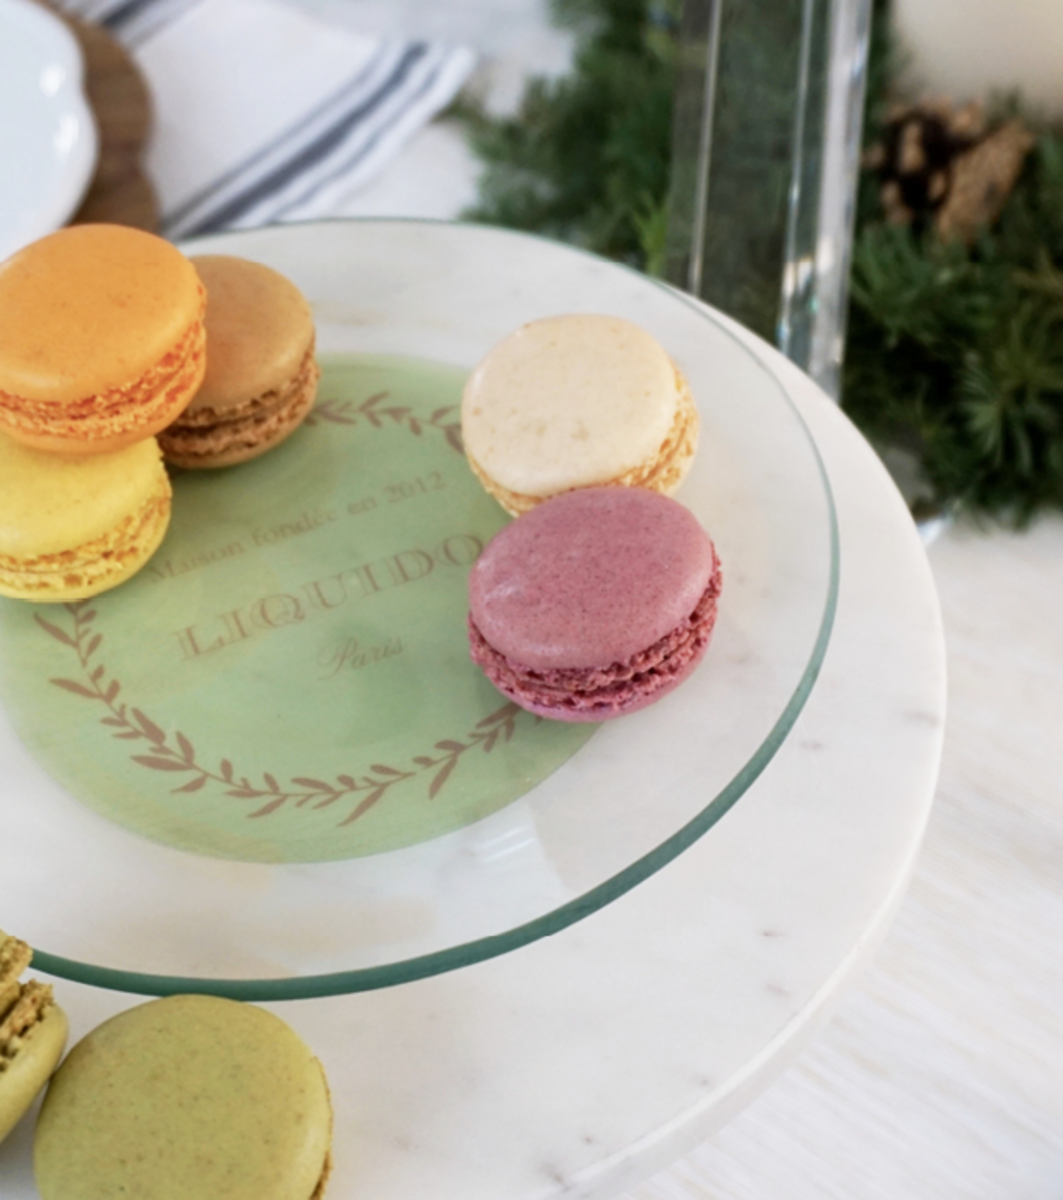 The design for this Shutterfly glass plate featuring our family name was inspired by Ladurée, one of our favorite Parisian pastry shops. Using it for pastries and sweets transports us to a pâtisserie.